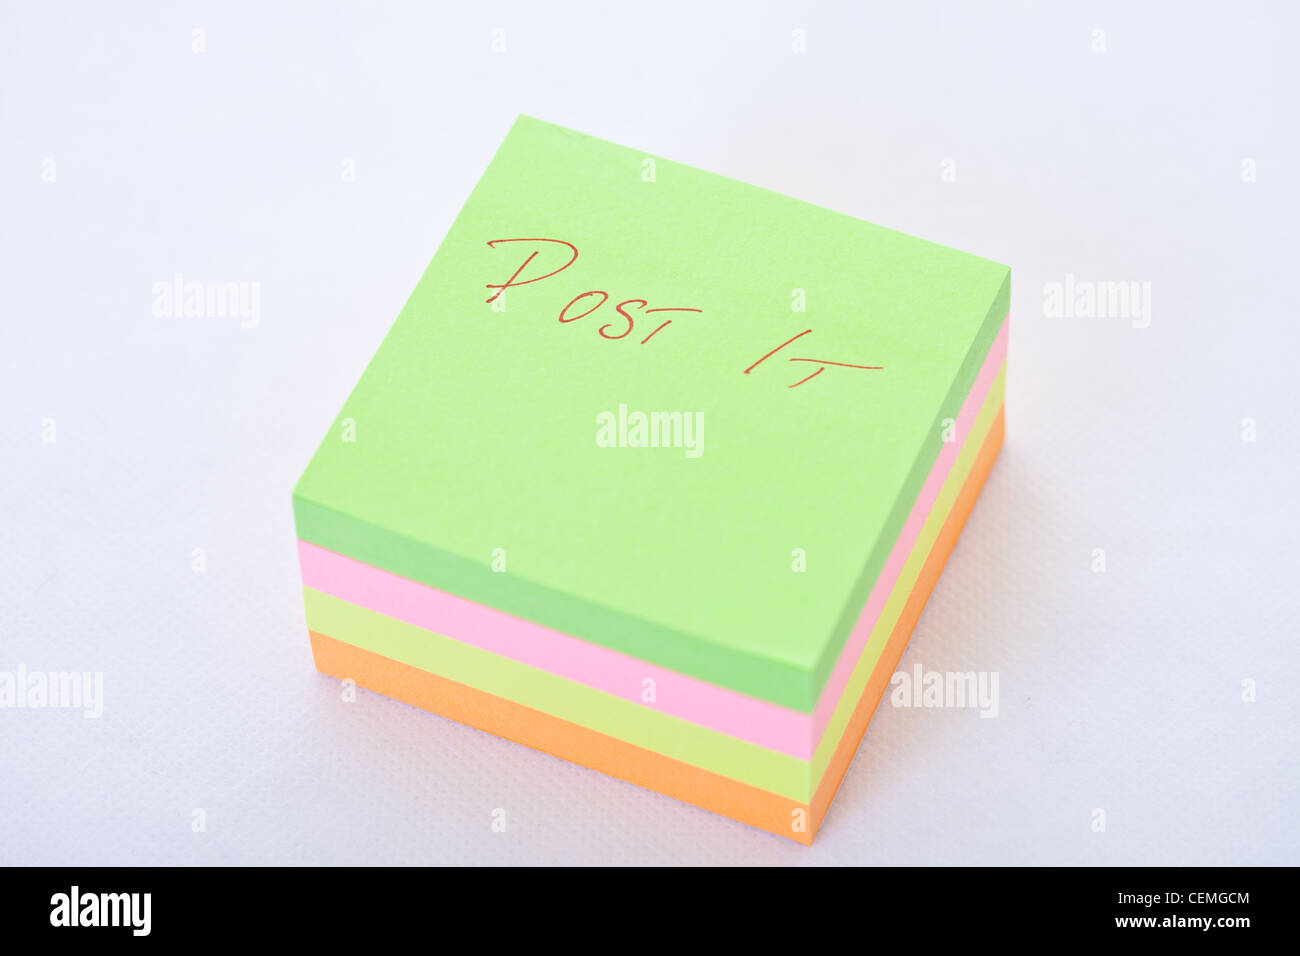 post it notes, multi colored post it notes,post it note block,note paper block,note block,note paper,multi colored - Stock Image